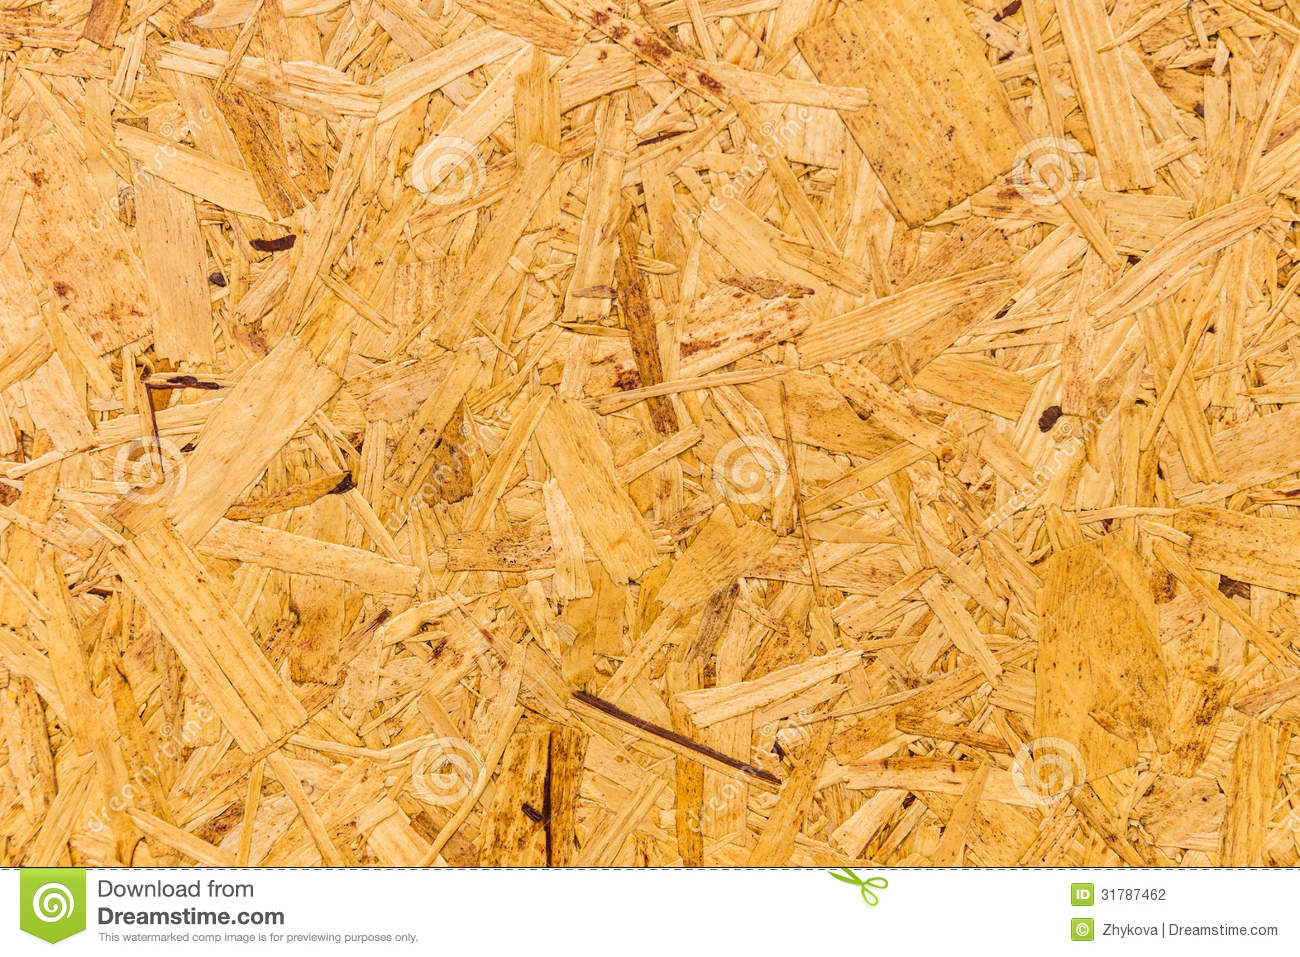 Oriented Strand Board : Osb oriented strand board stock photo image of material